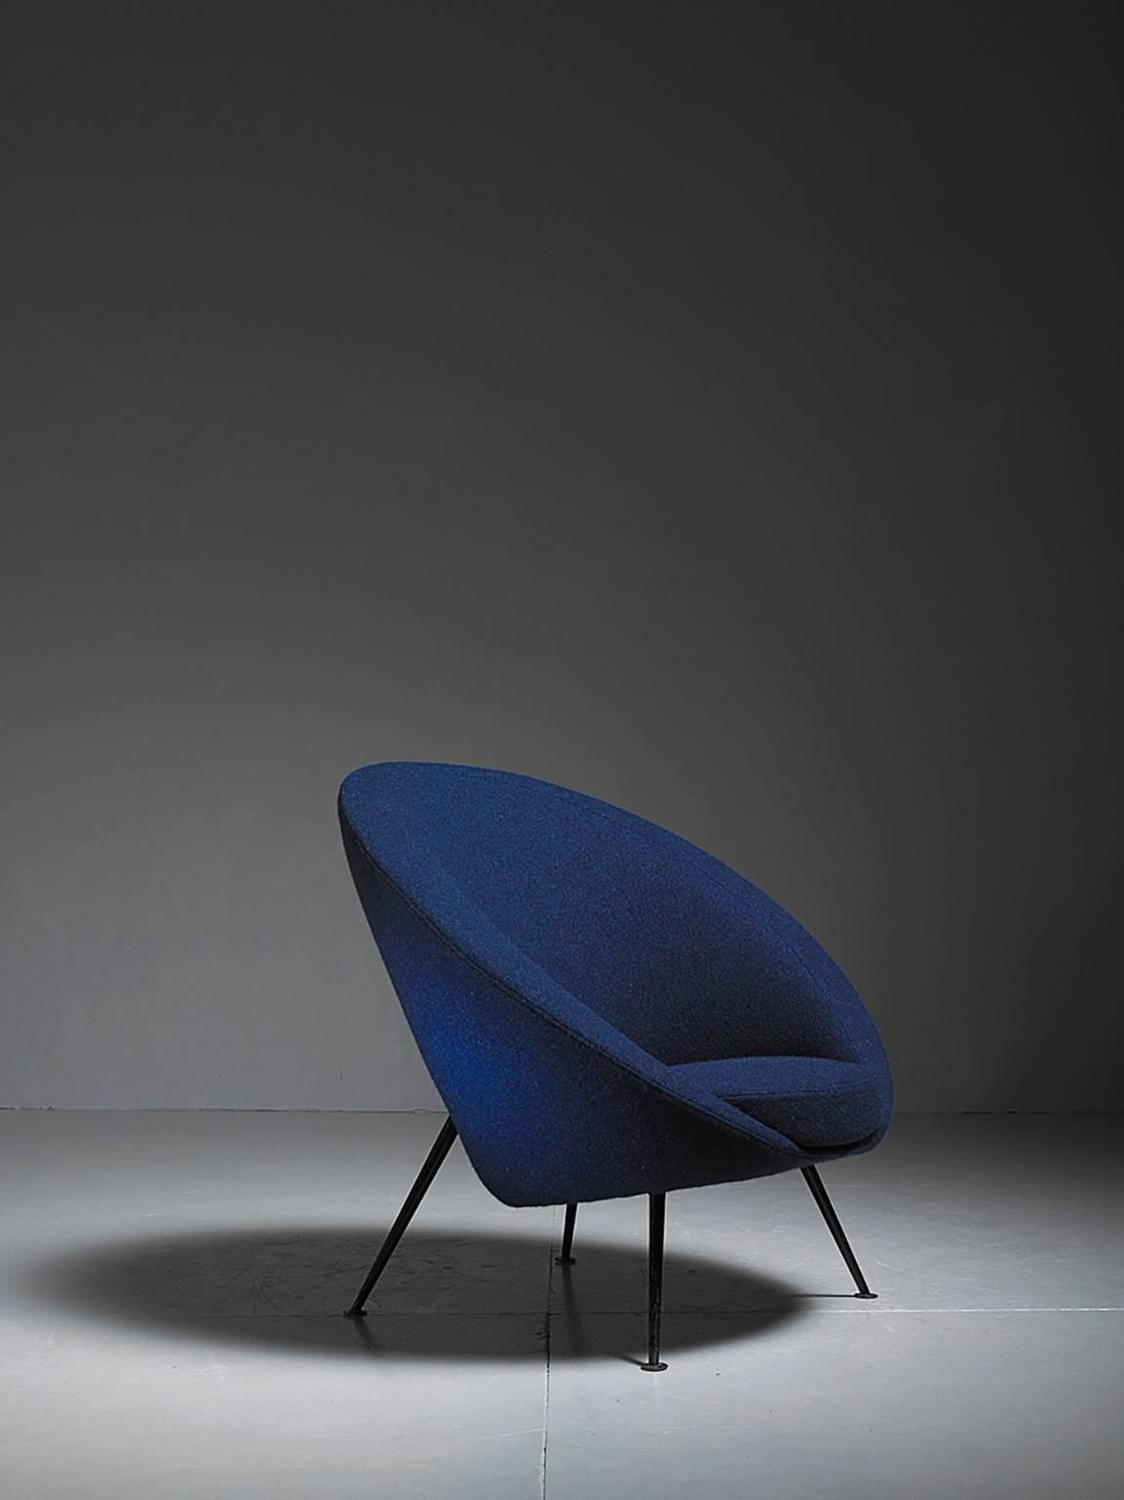 Pin By Romilly Turner On Chair Options Chair Furniture Egg Chair